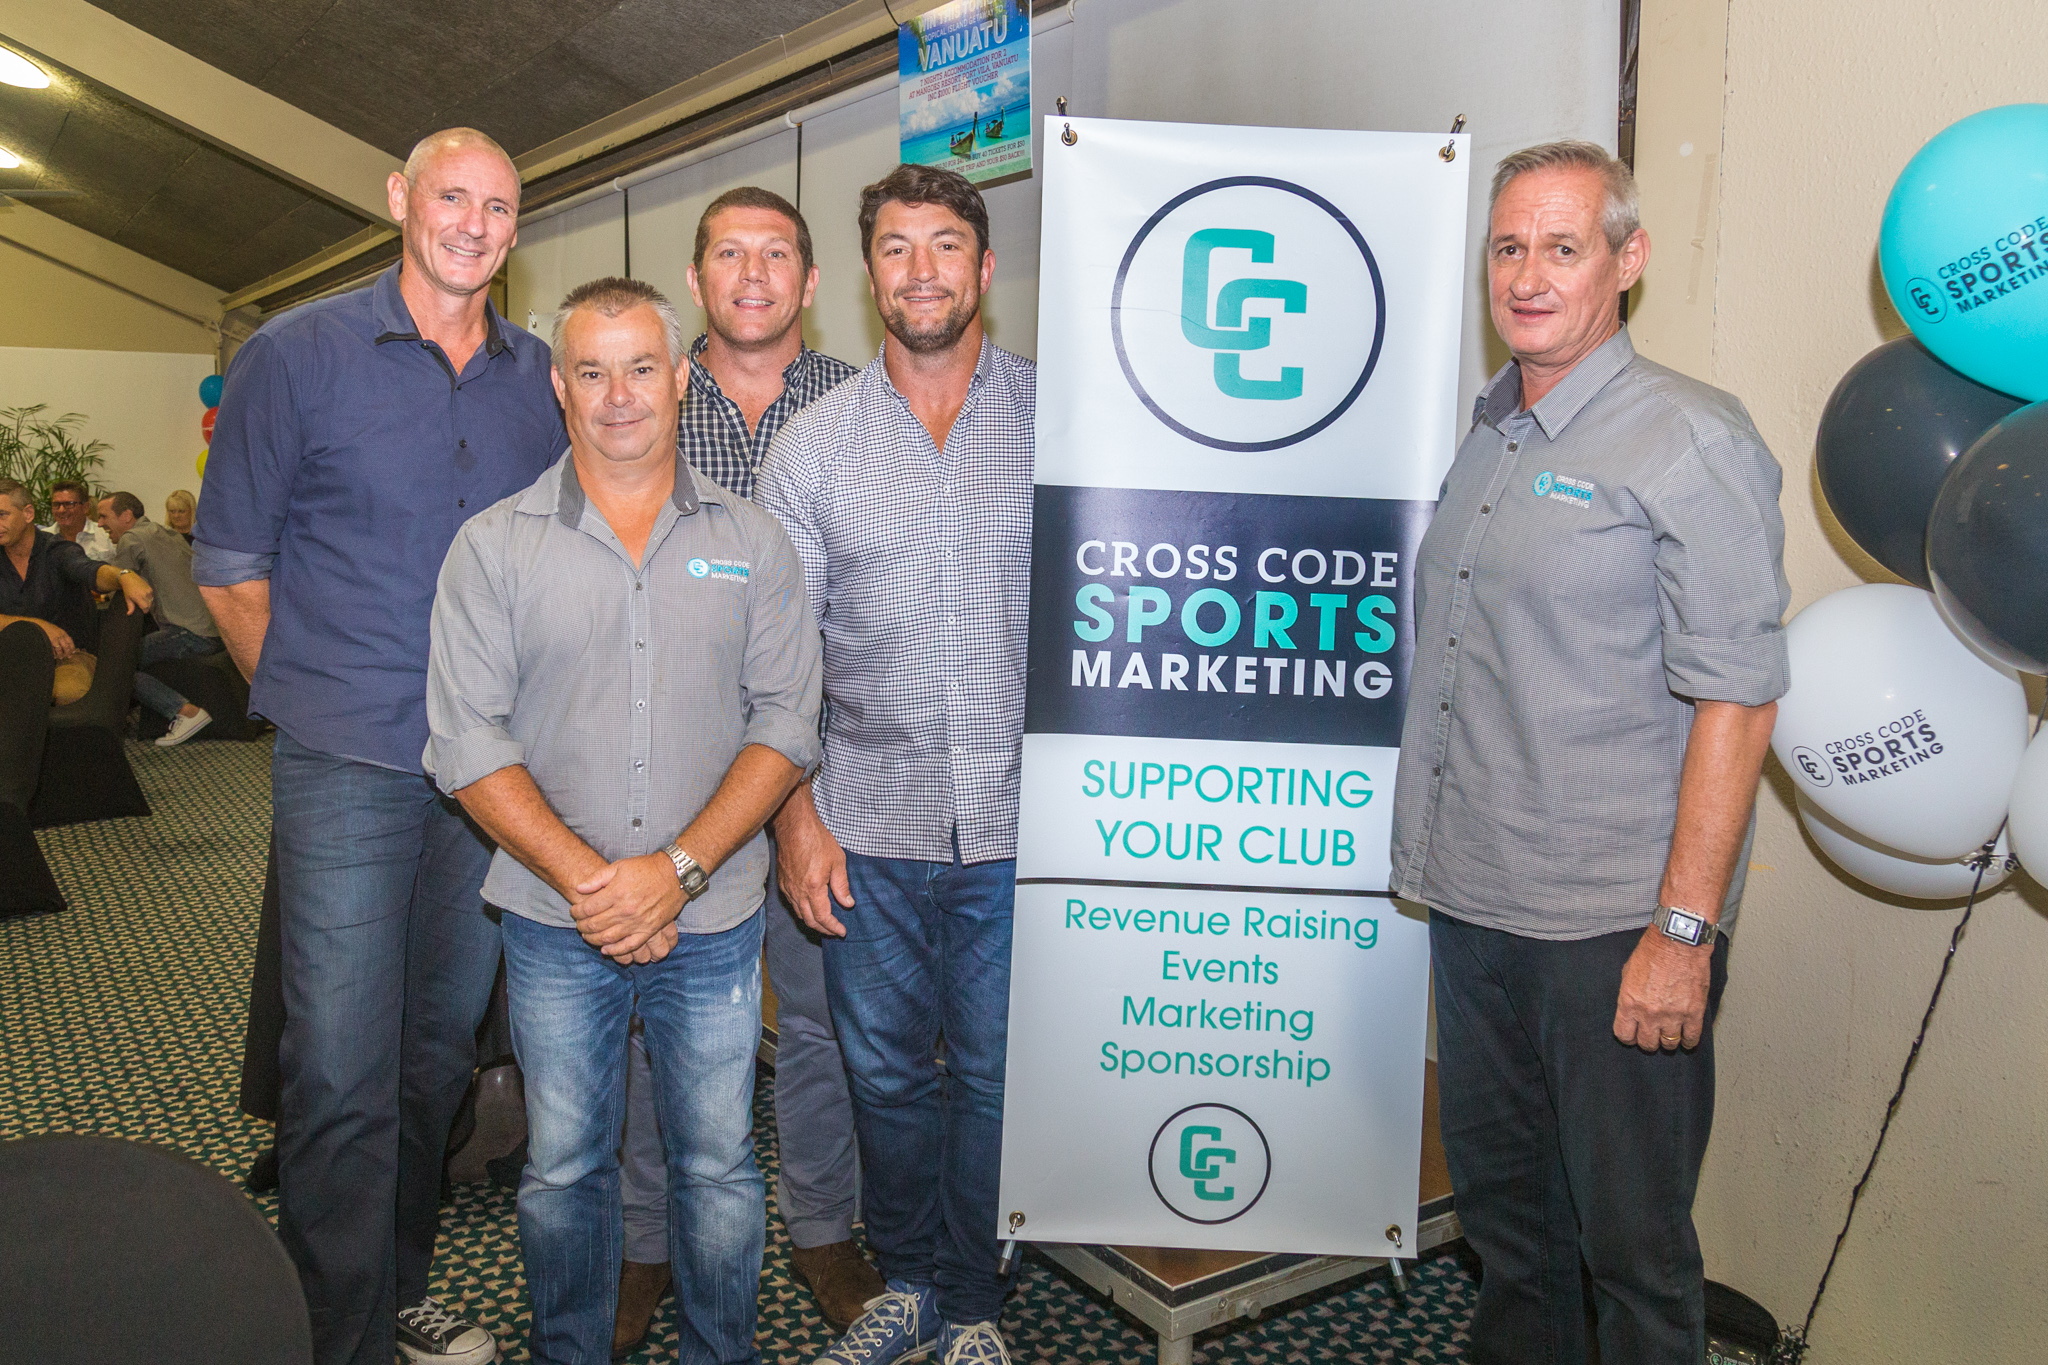 Cross Code Sports Marketing presents Fletch and Hindy